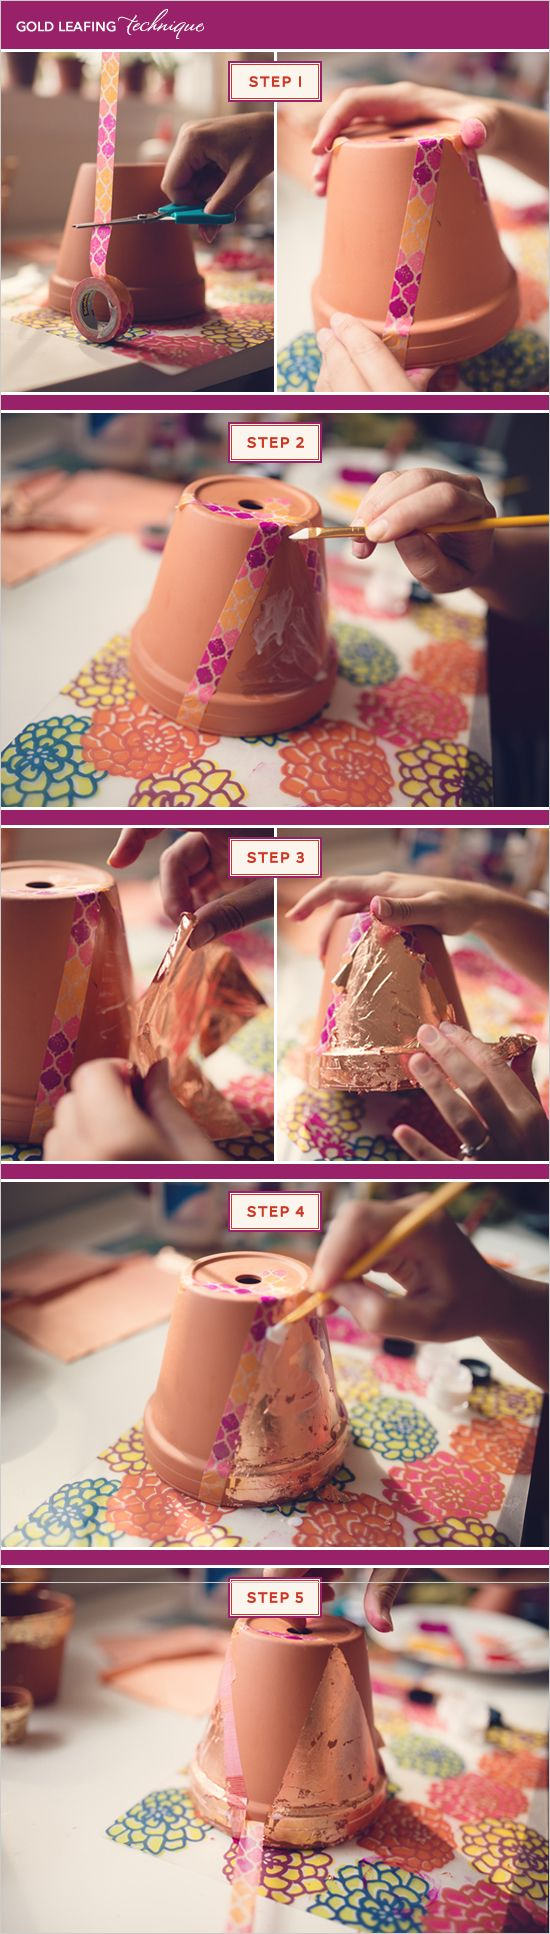 How to apply gold leaf to your own terra cotta pots